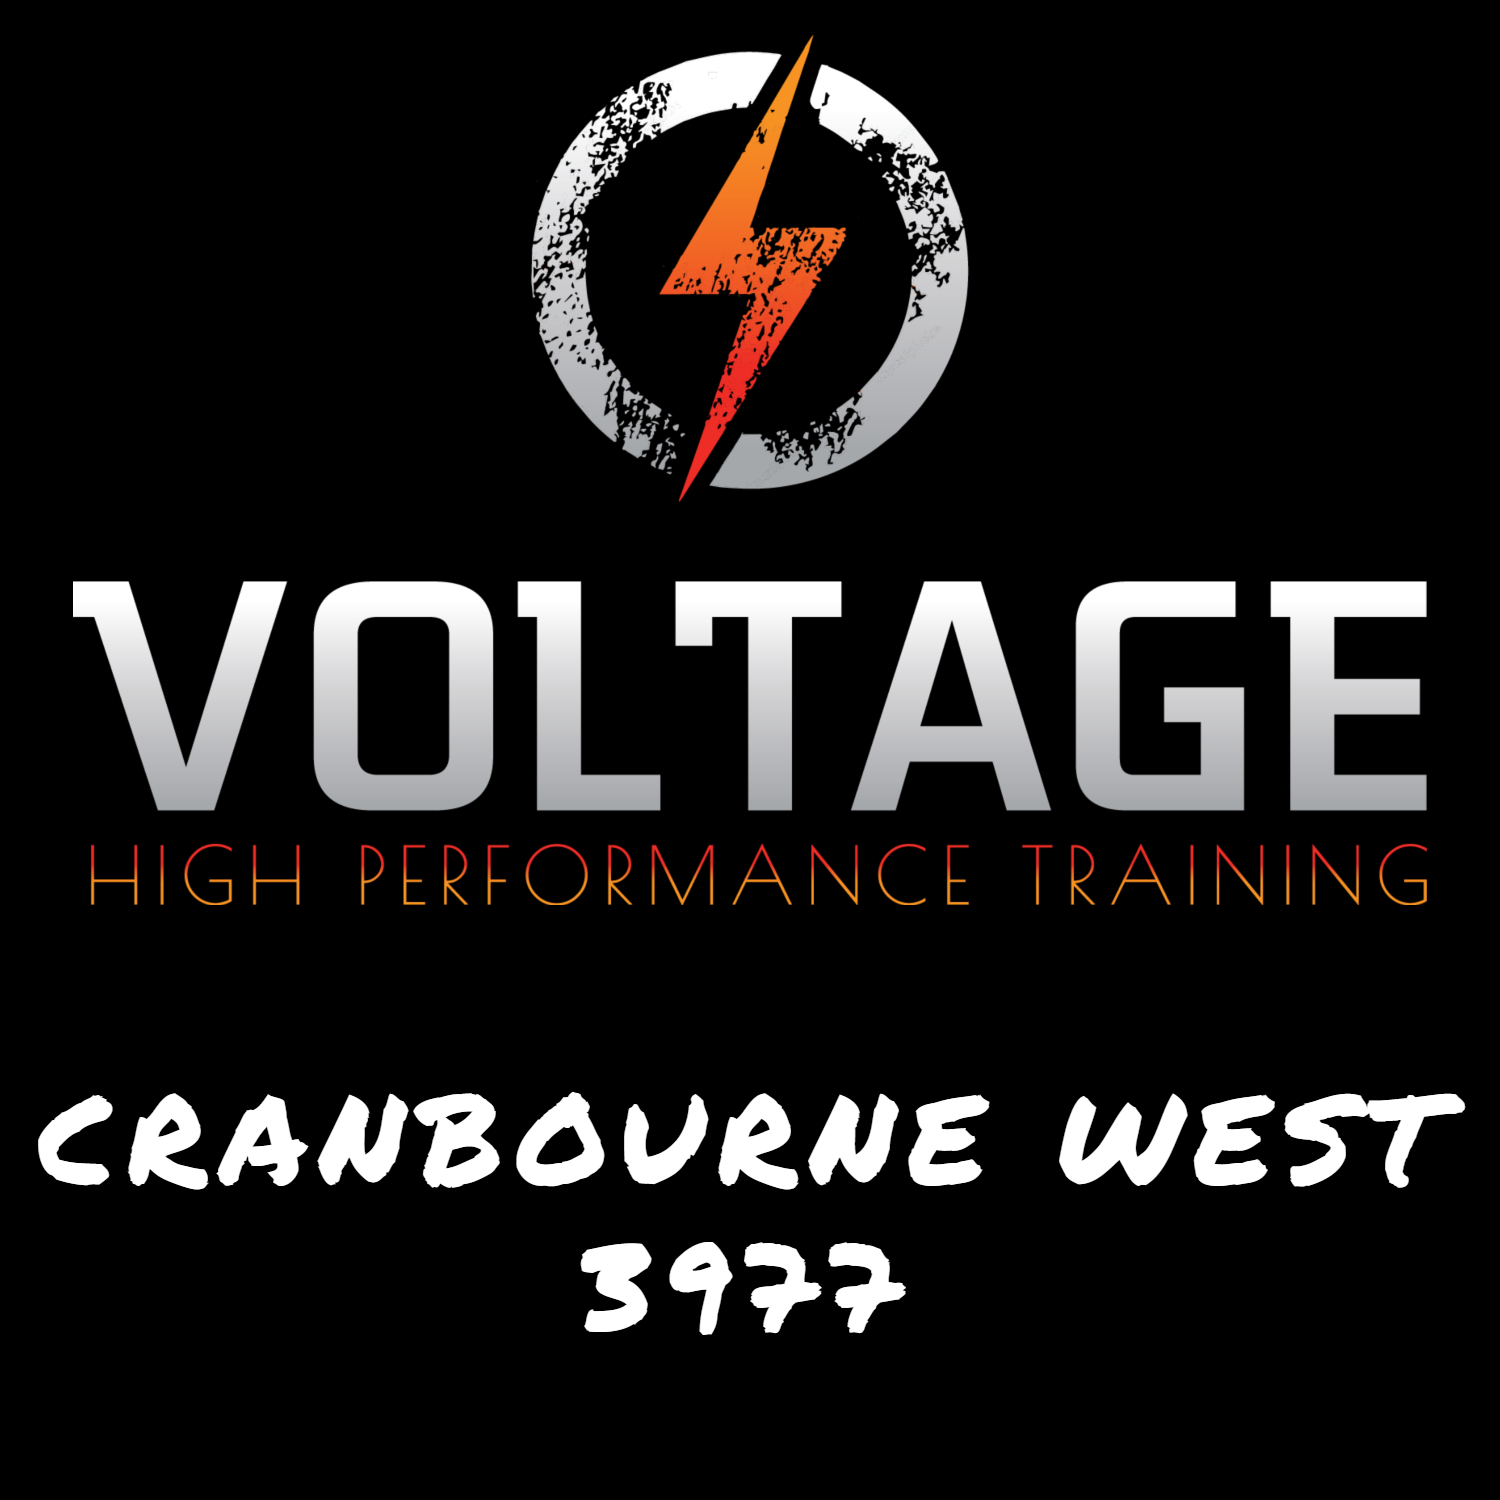 Voltage Cranbourne West.jpg